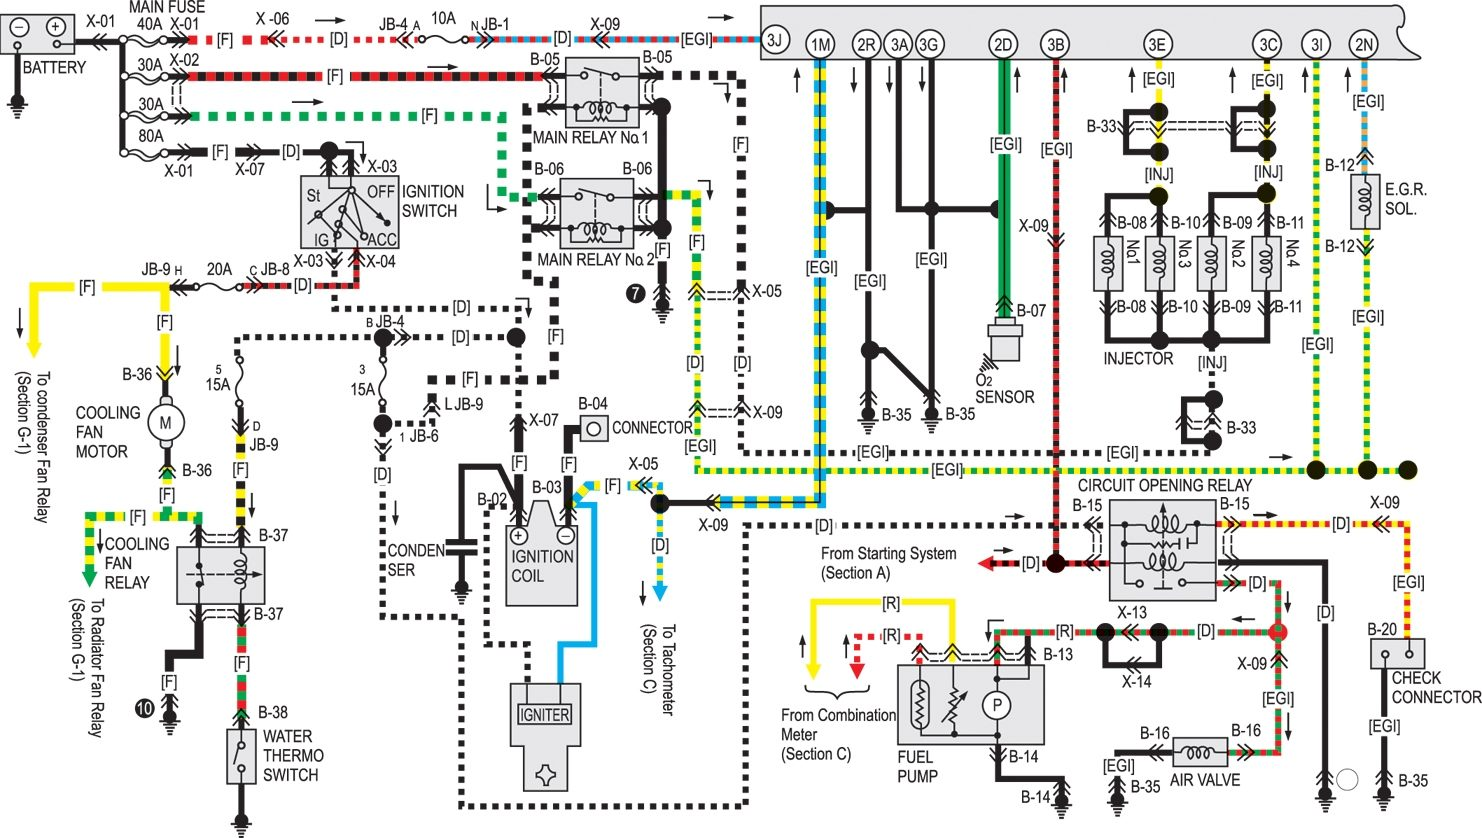 Wiring Diagram For Workshop Free Download Schematic - DIY Wiring ...